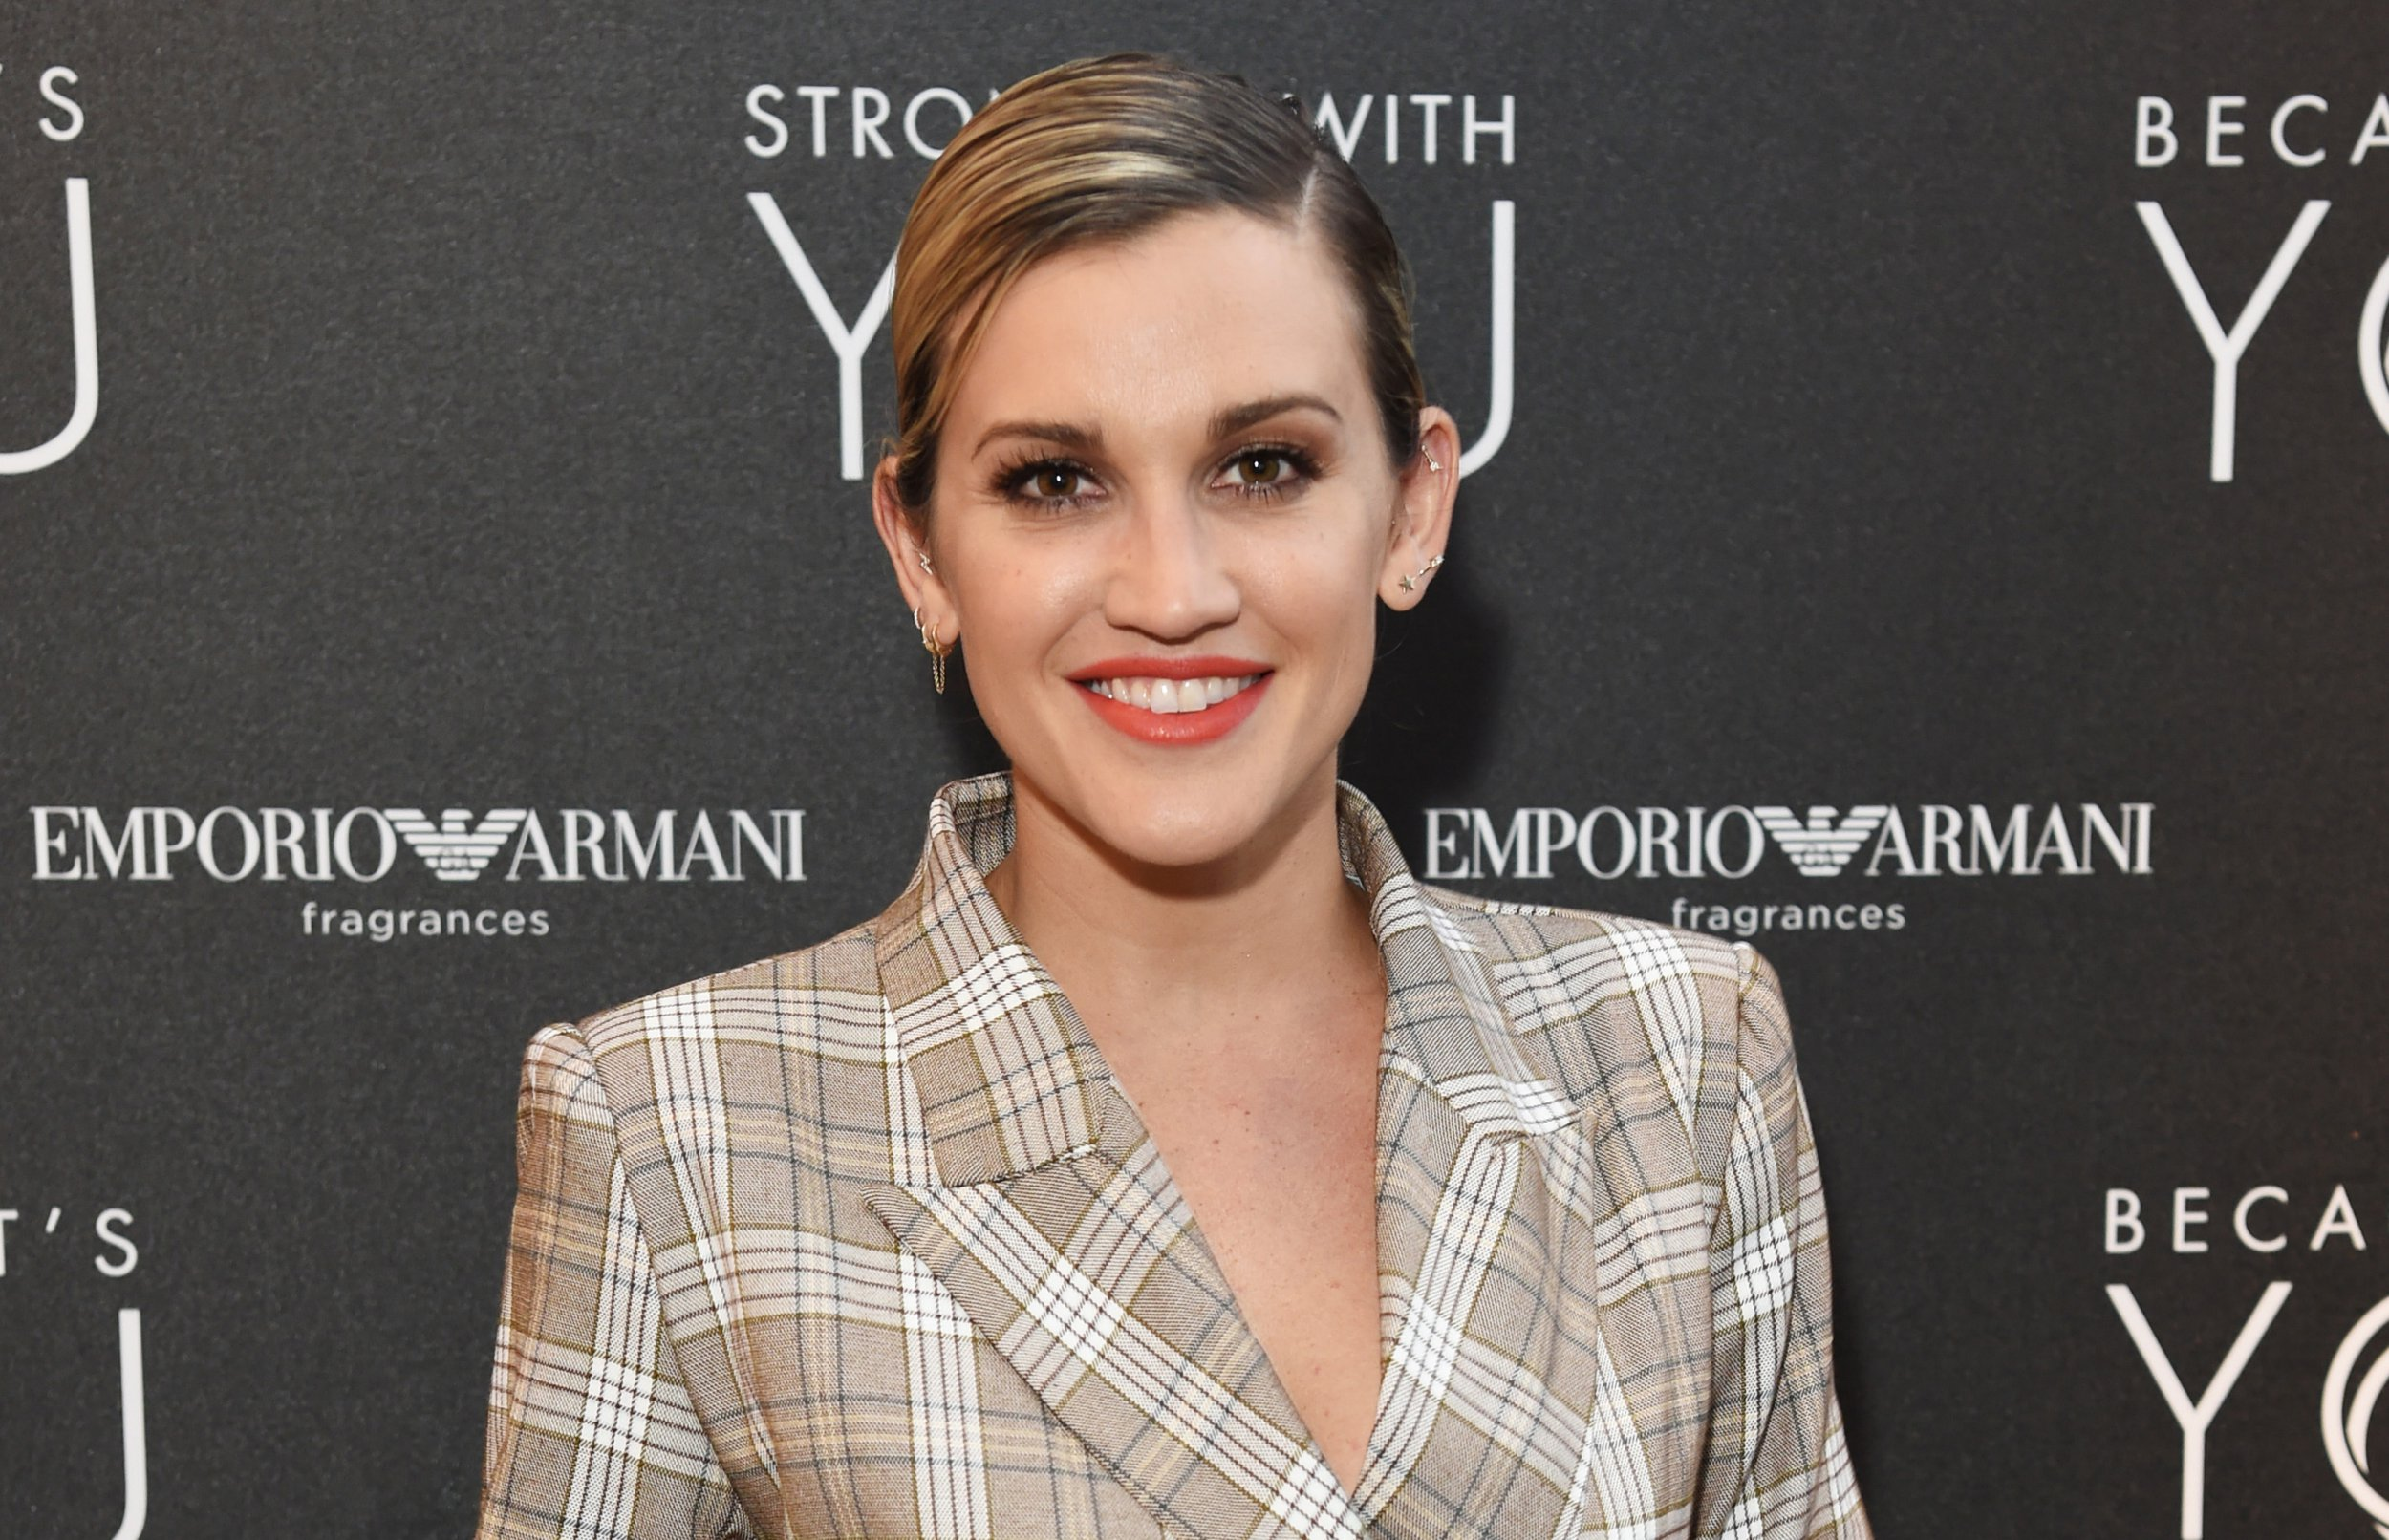 LONDON, ENGLAND - JULY 18: Ashley Roberts attends the Emporio Armani Fragrance 'Stronger With You' party at Roast on July 18, 2018 in London, England. (Photo by David M. Benett/Dave Benett/Getty Images for Emporio Armani)